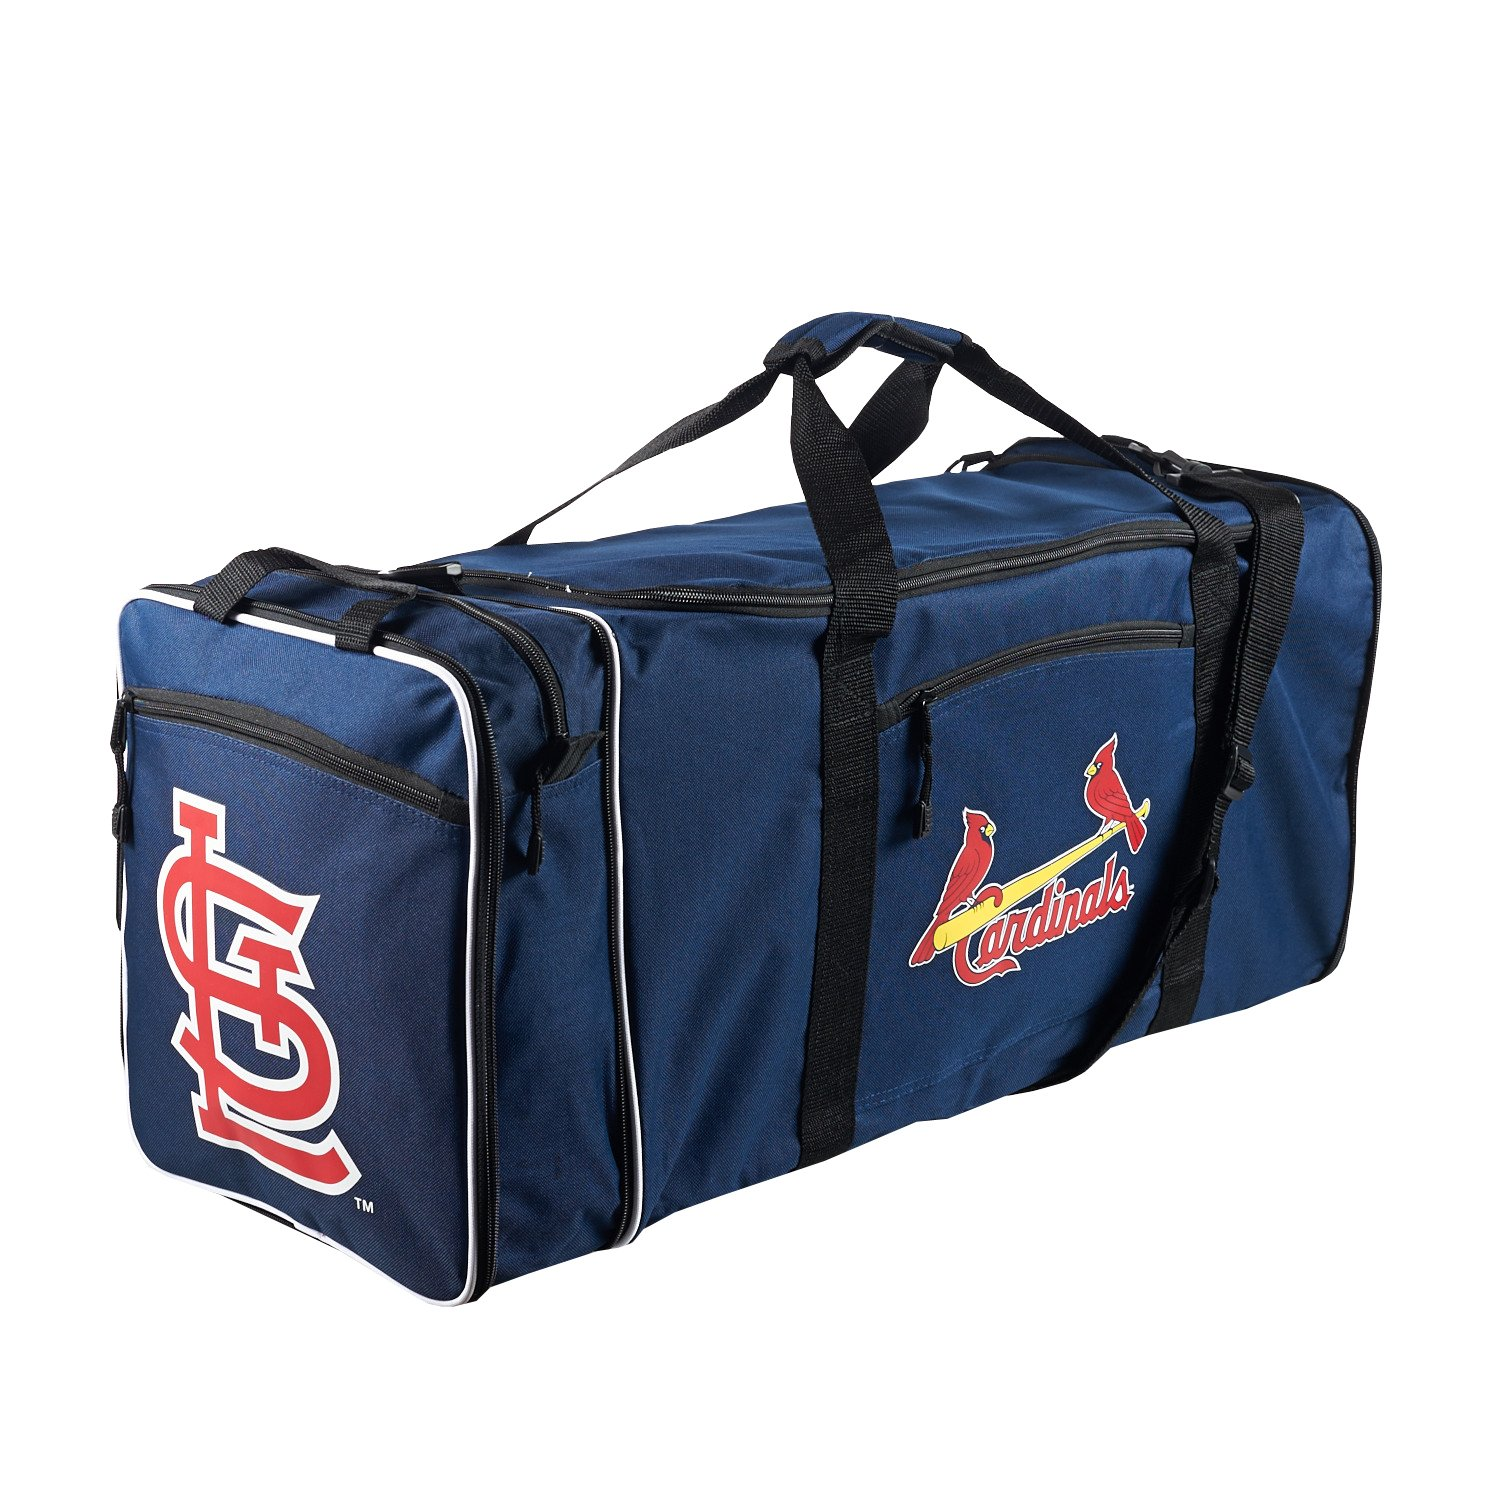 The Northwest Company Officially Licensed MLB St. Louis Cardinals Steal Duffel bag, 28'' x 11'' x 12''